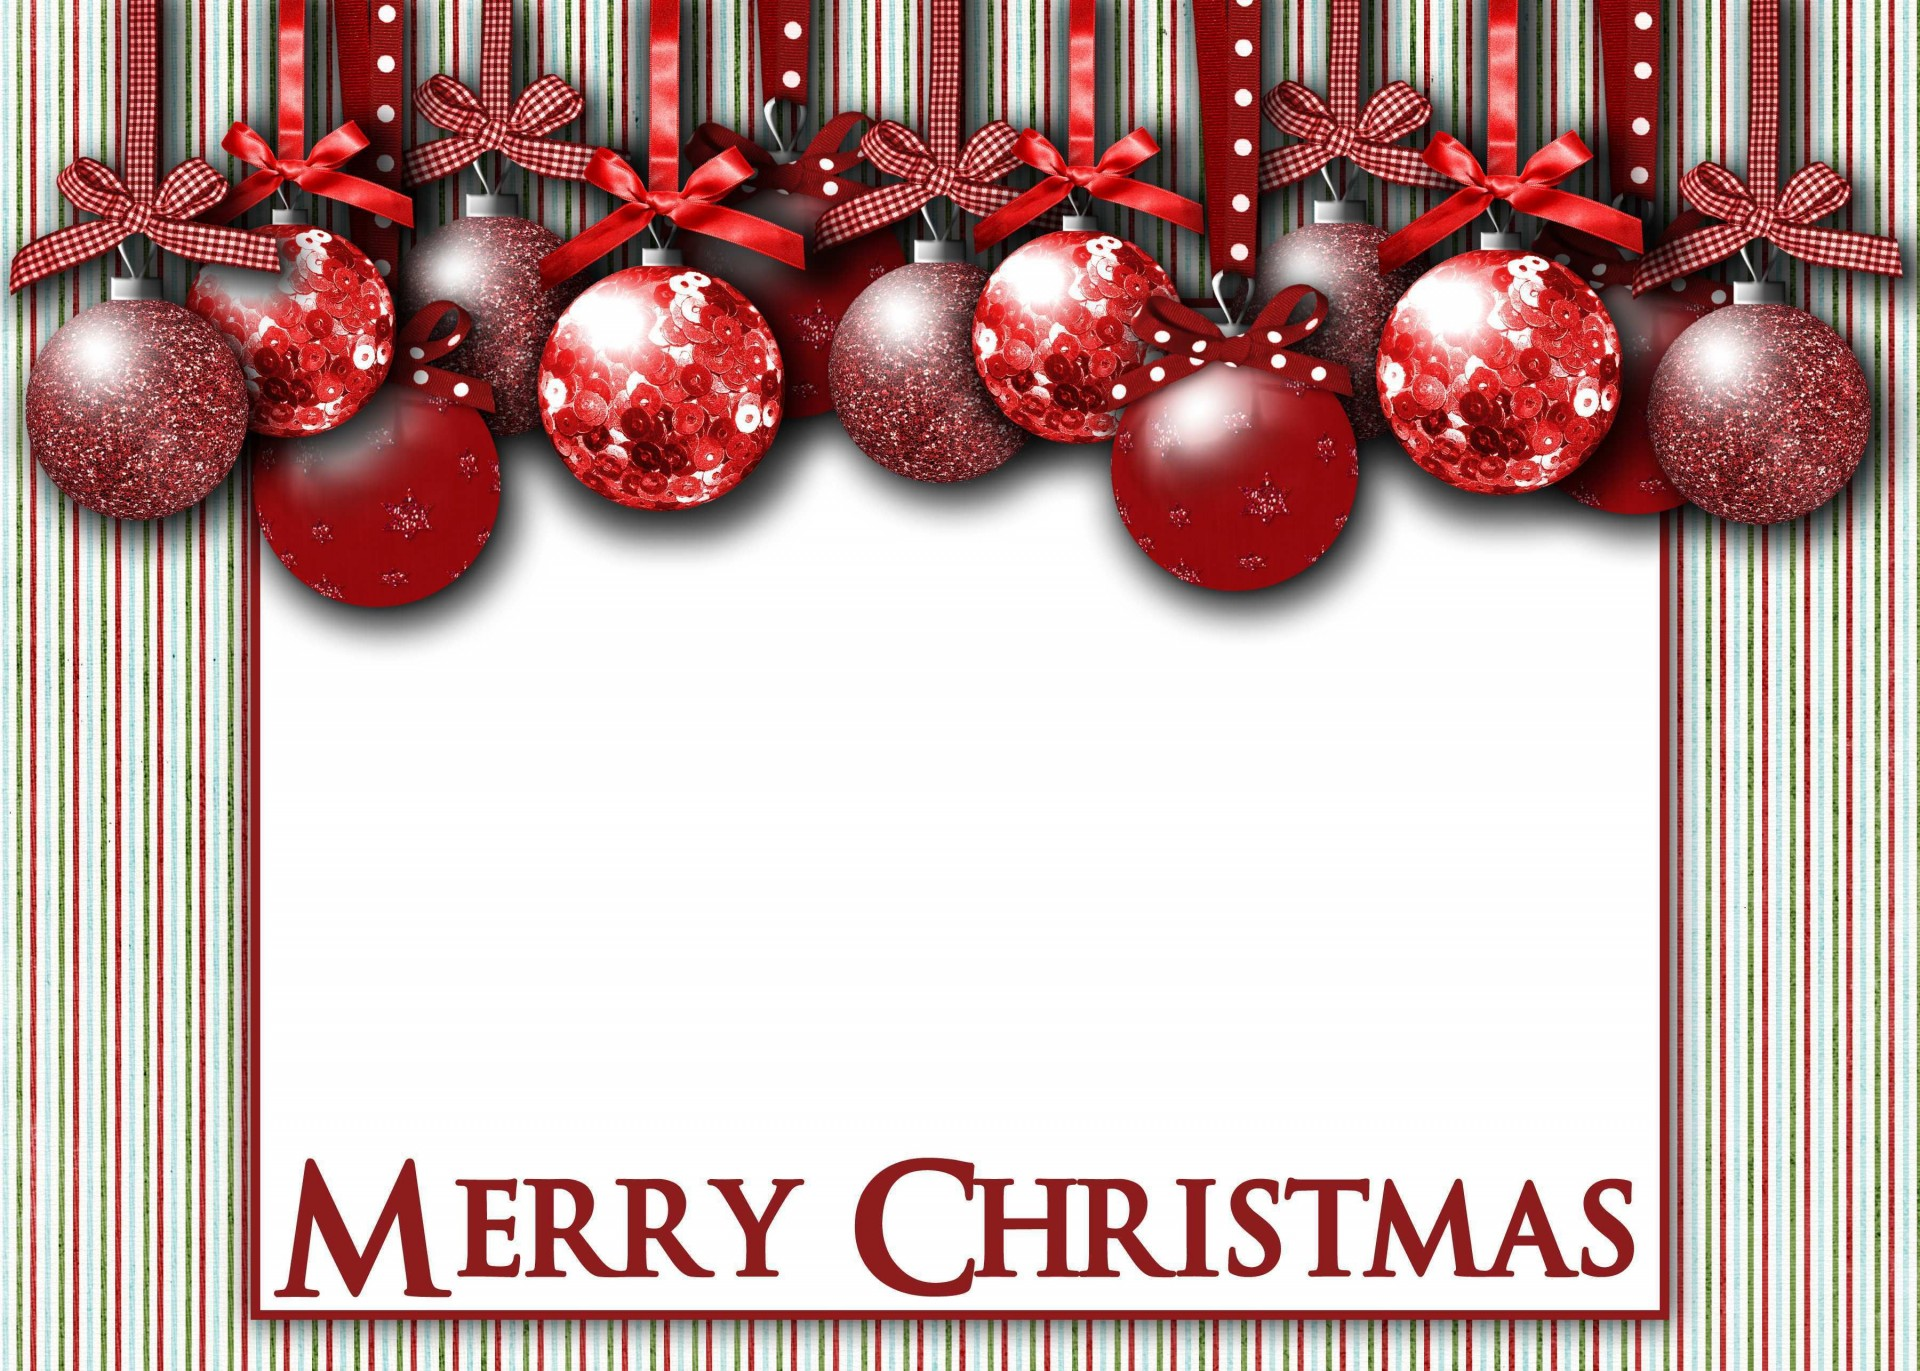 004 Rare Christma Card Template Free Download Idea  Downloads Photoshop Photo Editable1920